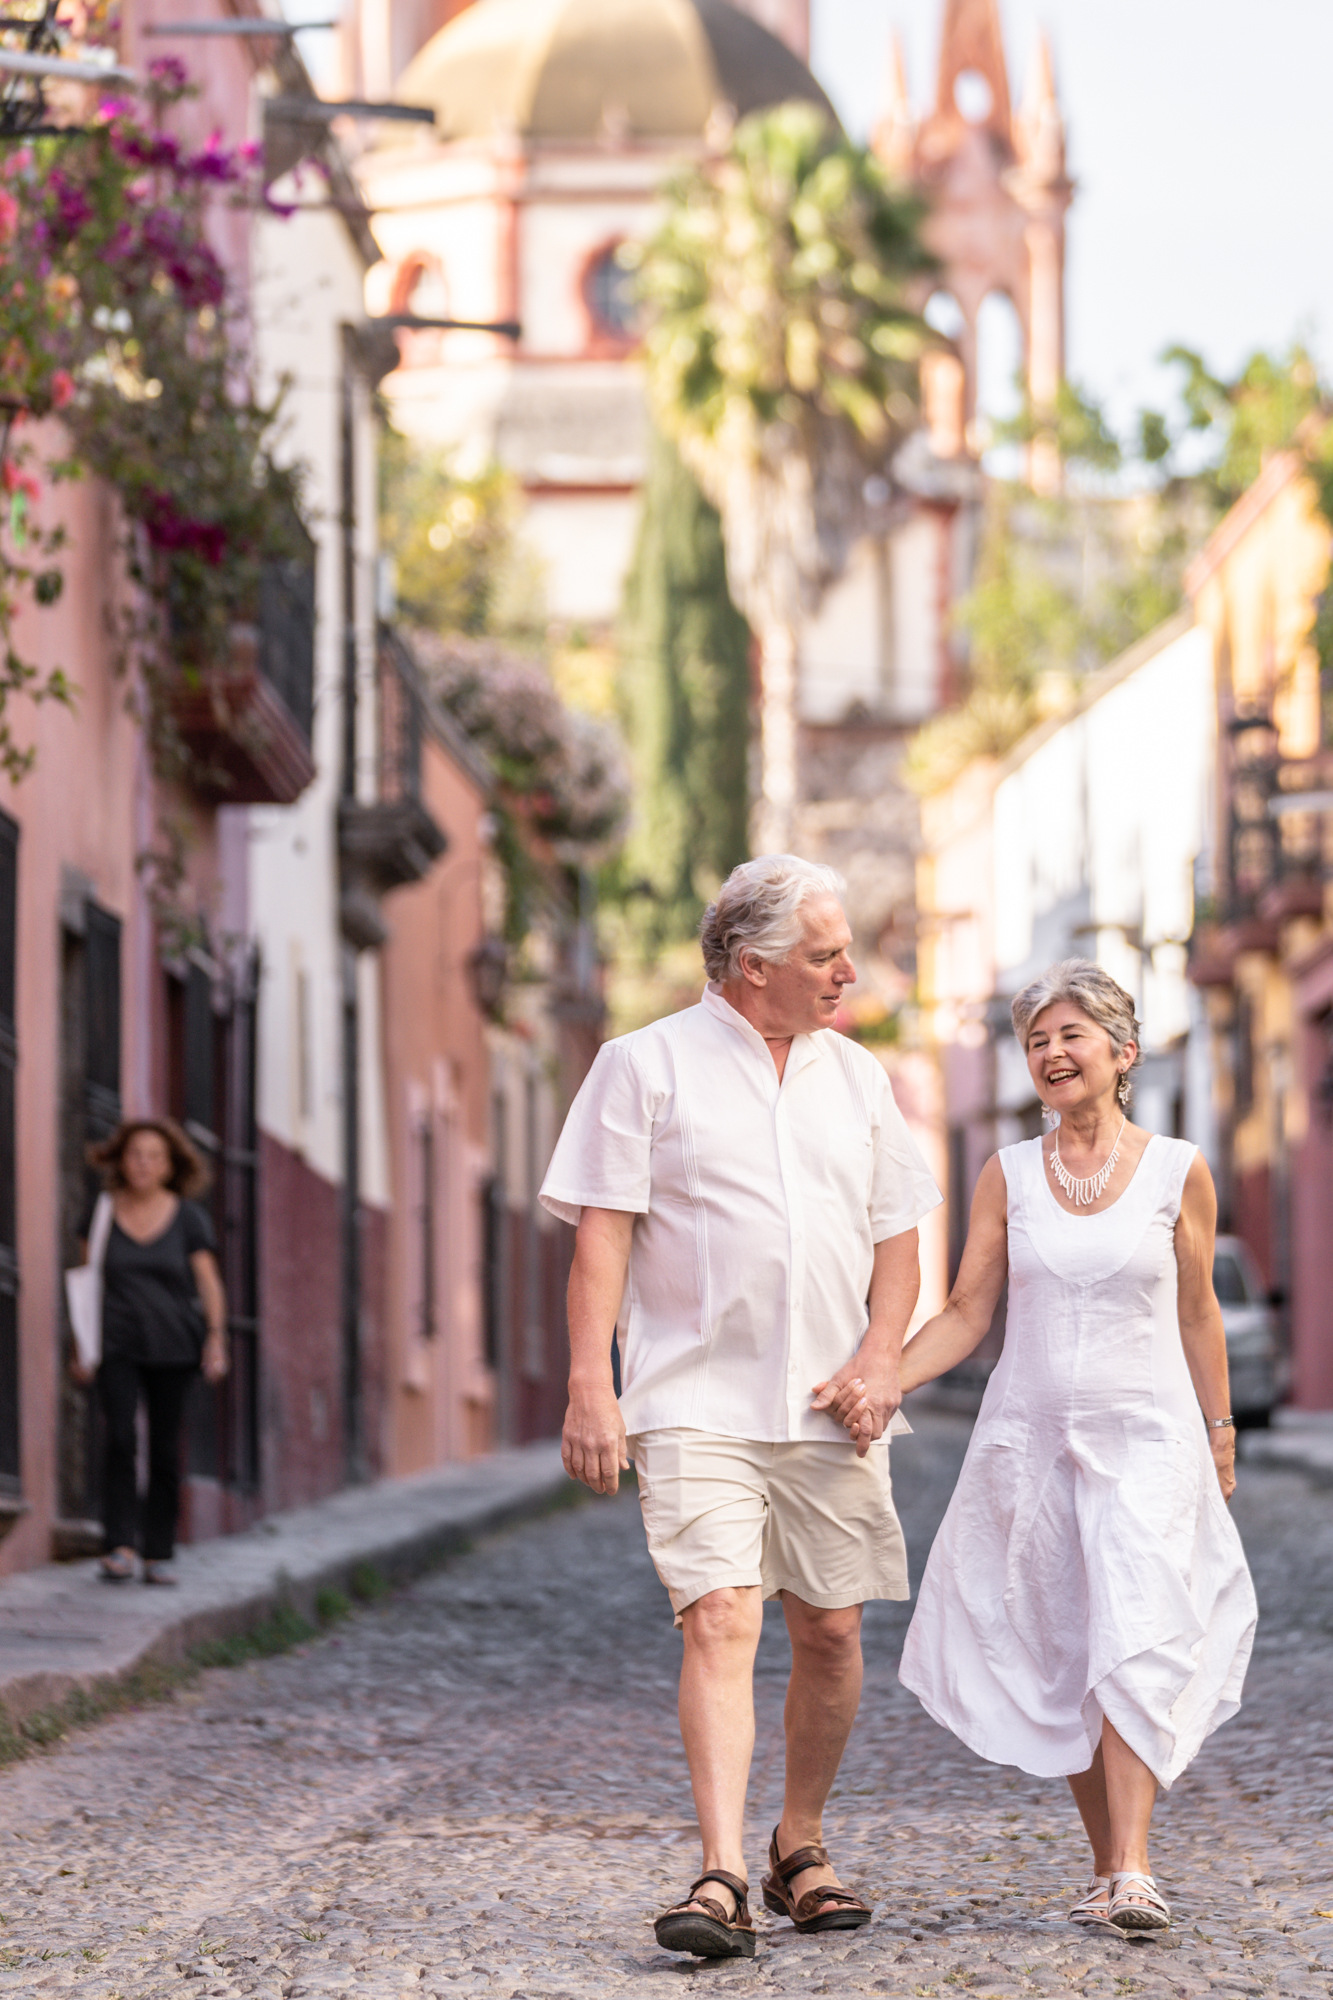 Photoshoot session in San Miguel de Allende with Suzanne and Leo-14.jpg